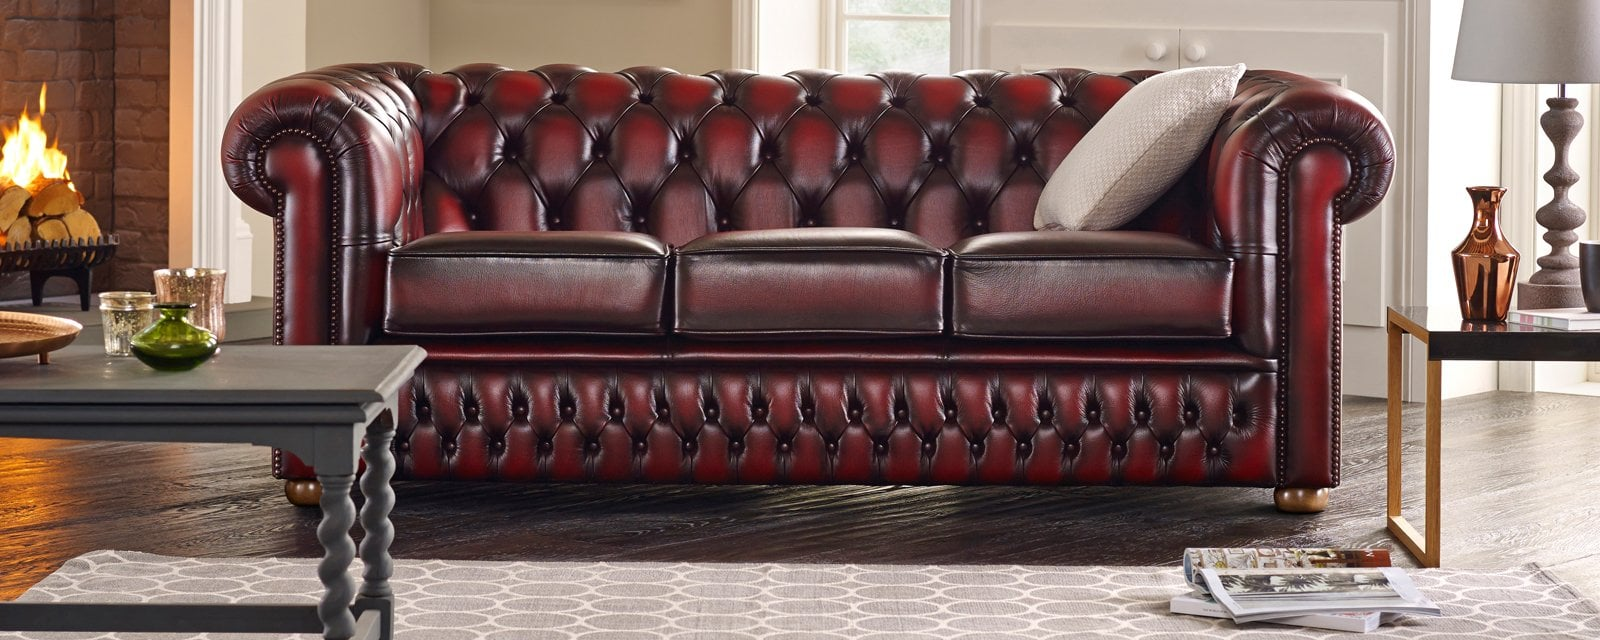 How to Spot A Quality Chesterfield Sofa   Sofas by Saxon